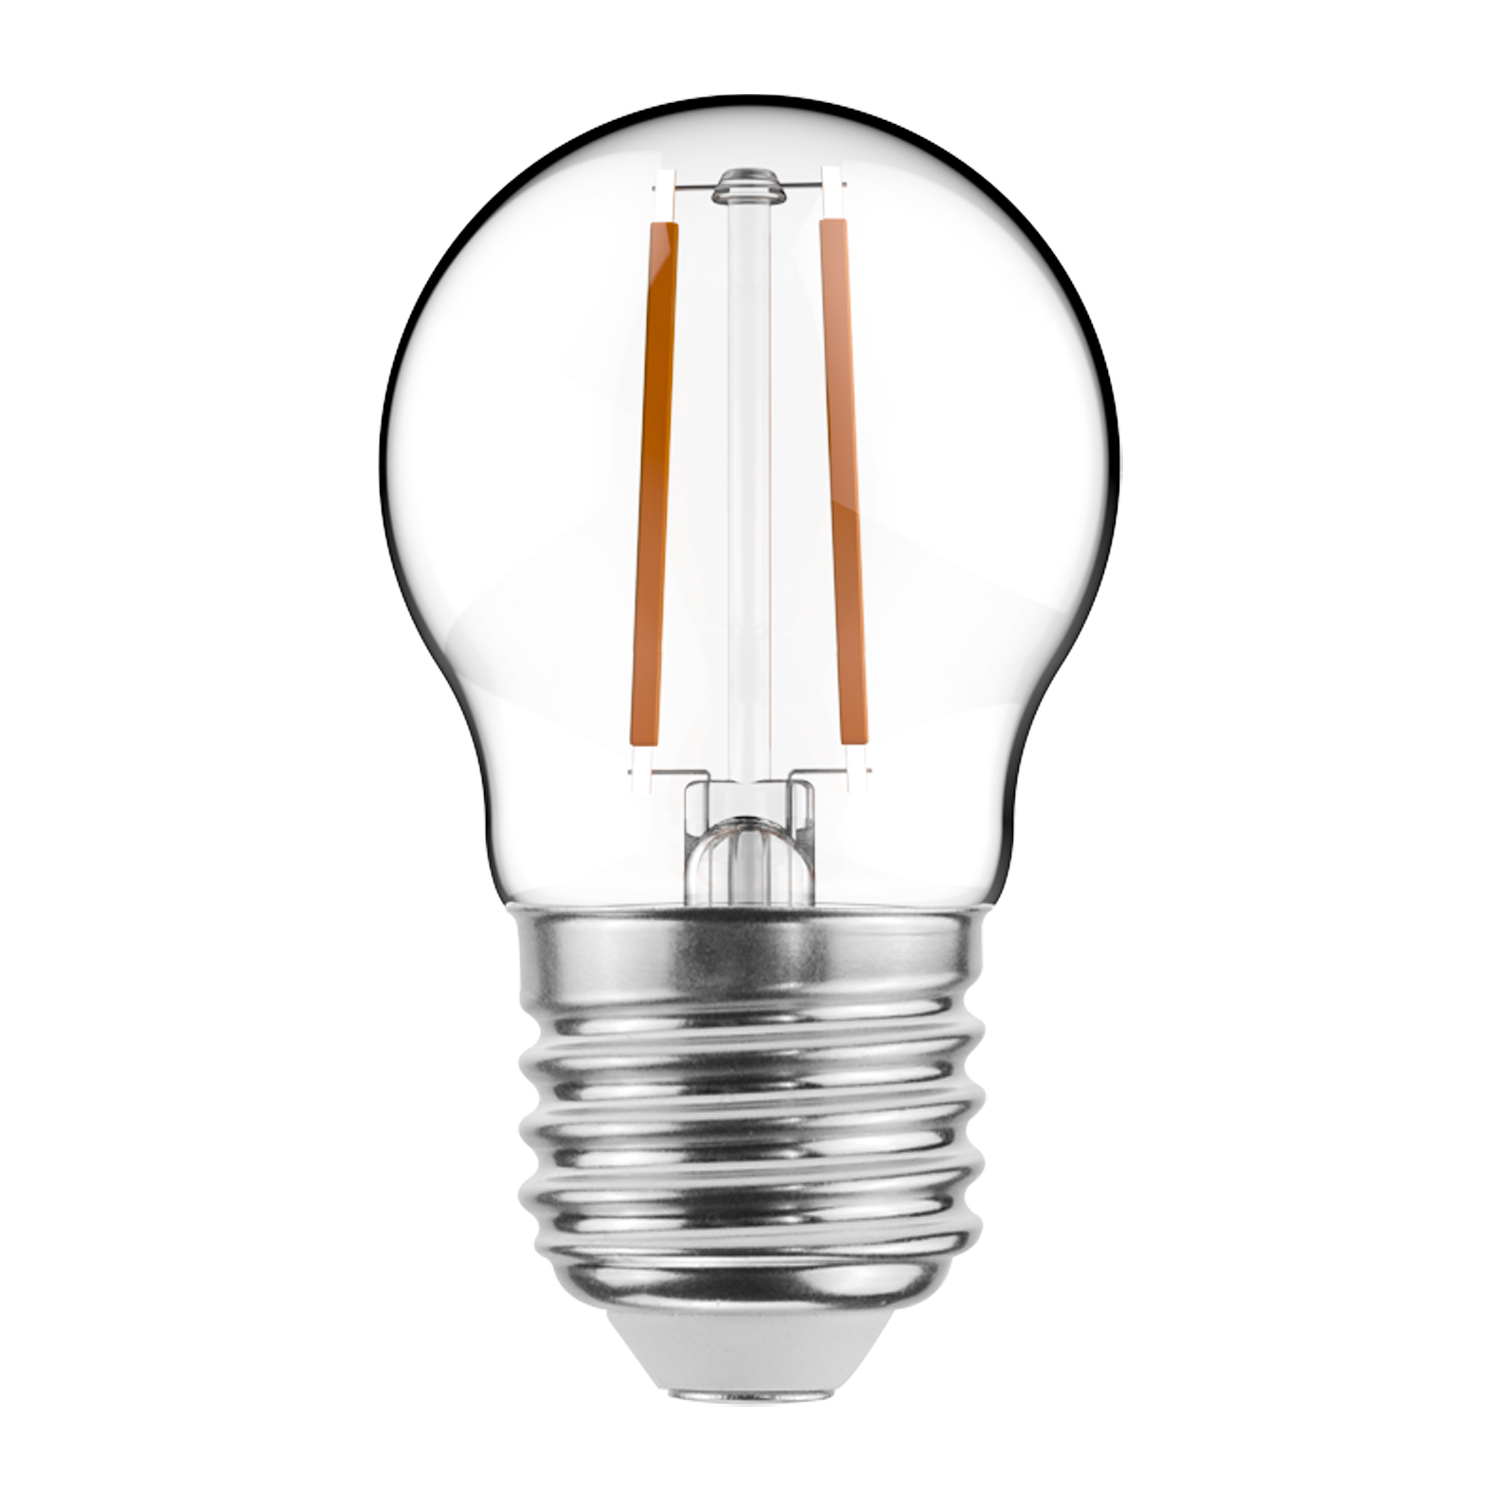 Noxion Lucent LED Lustre E27 2.6W 827 Filament | Zeer Warm Wit – Vervangt 25W | Noxion | 8719157009485